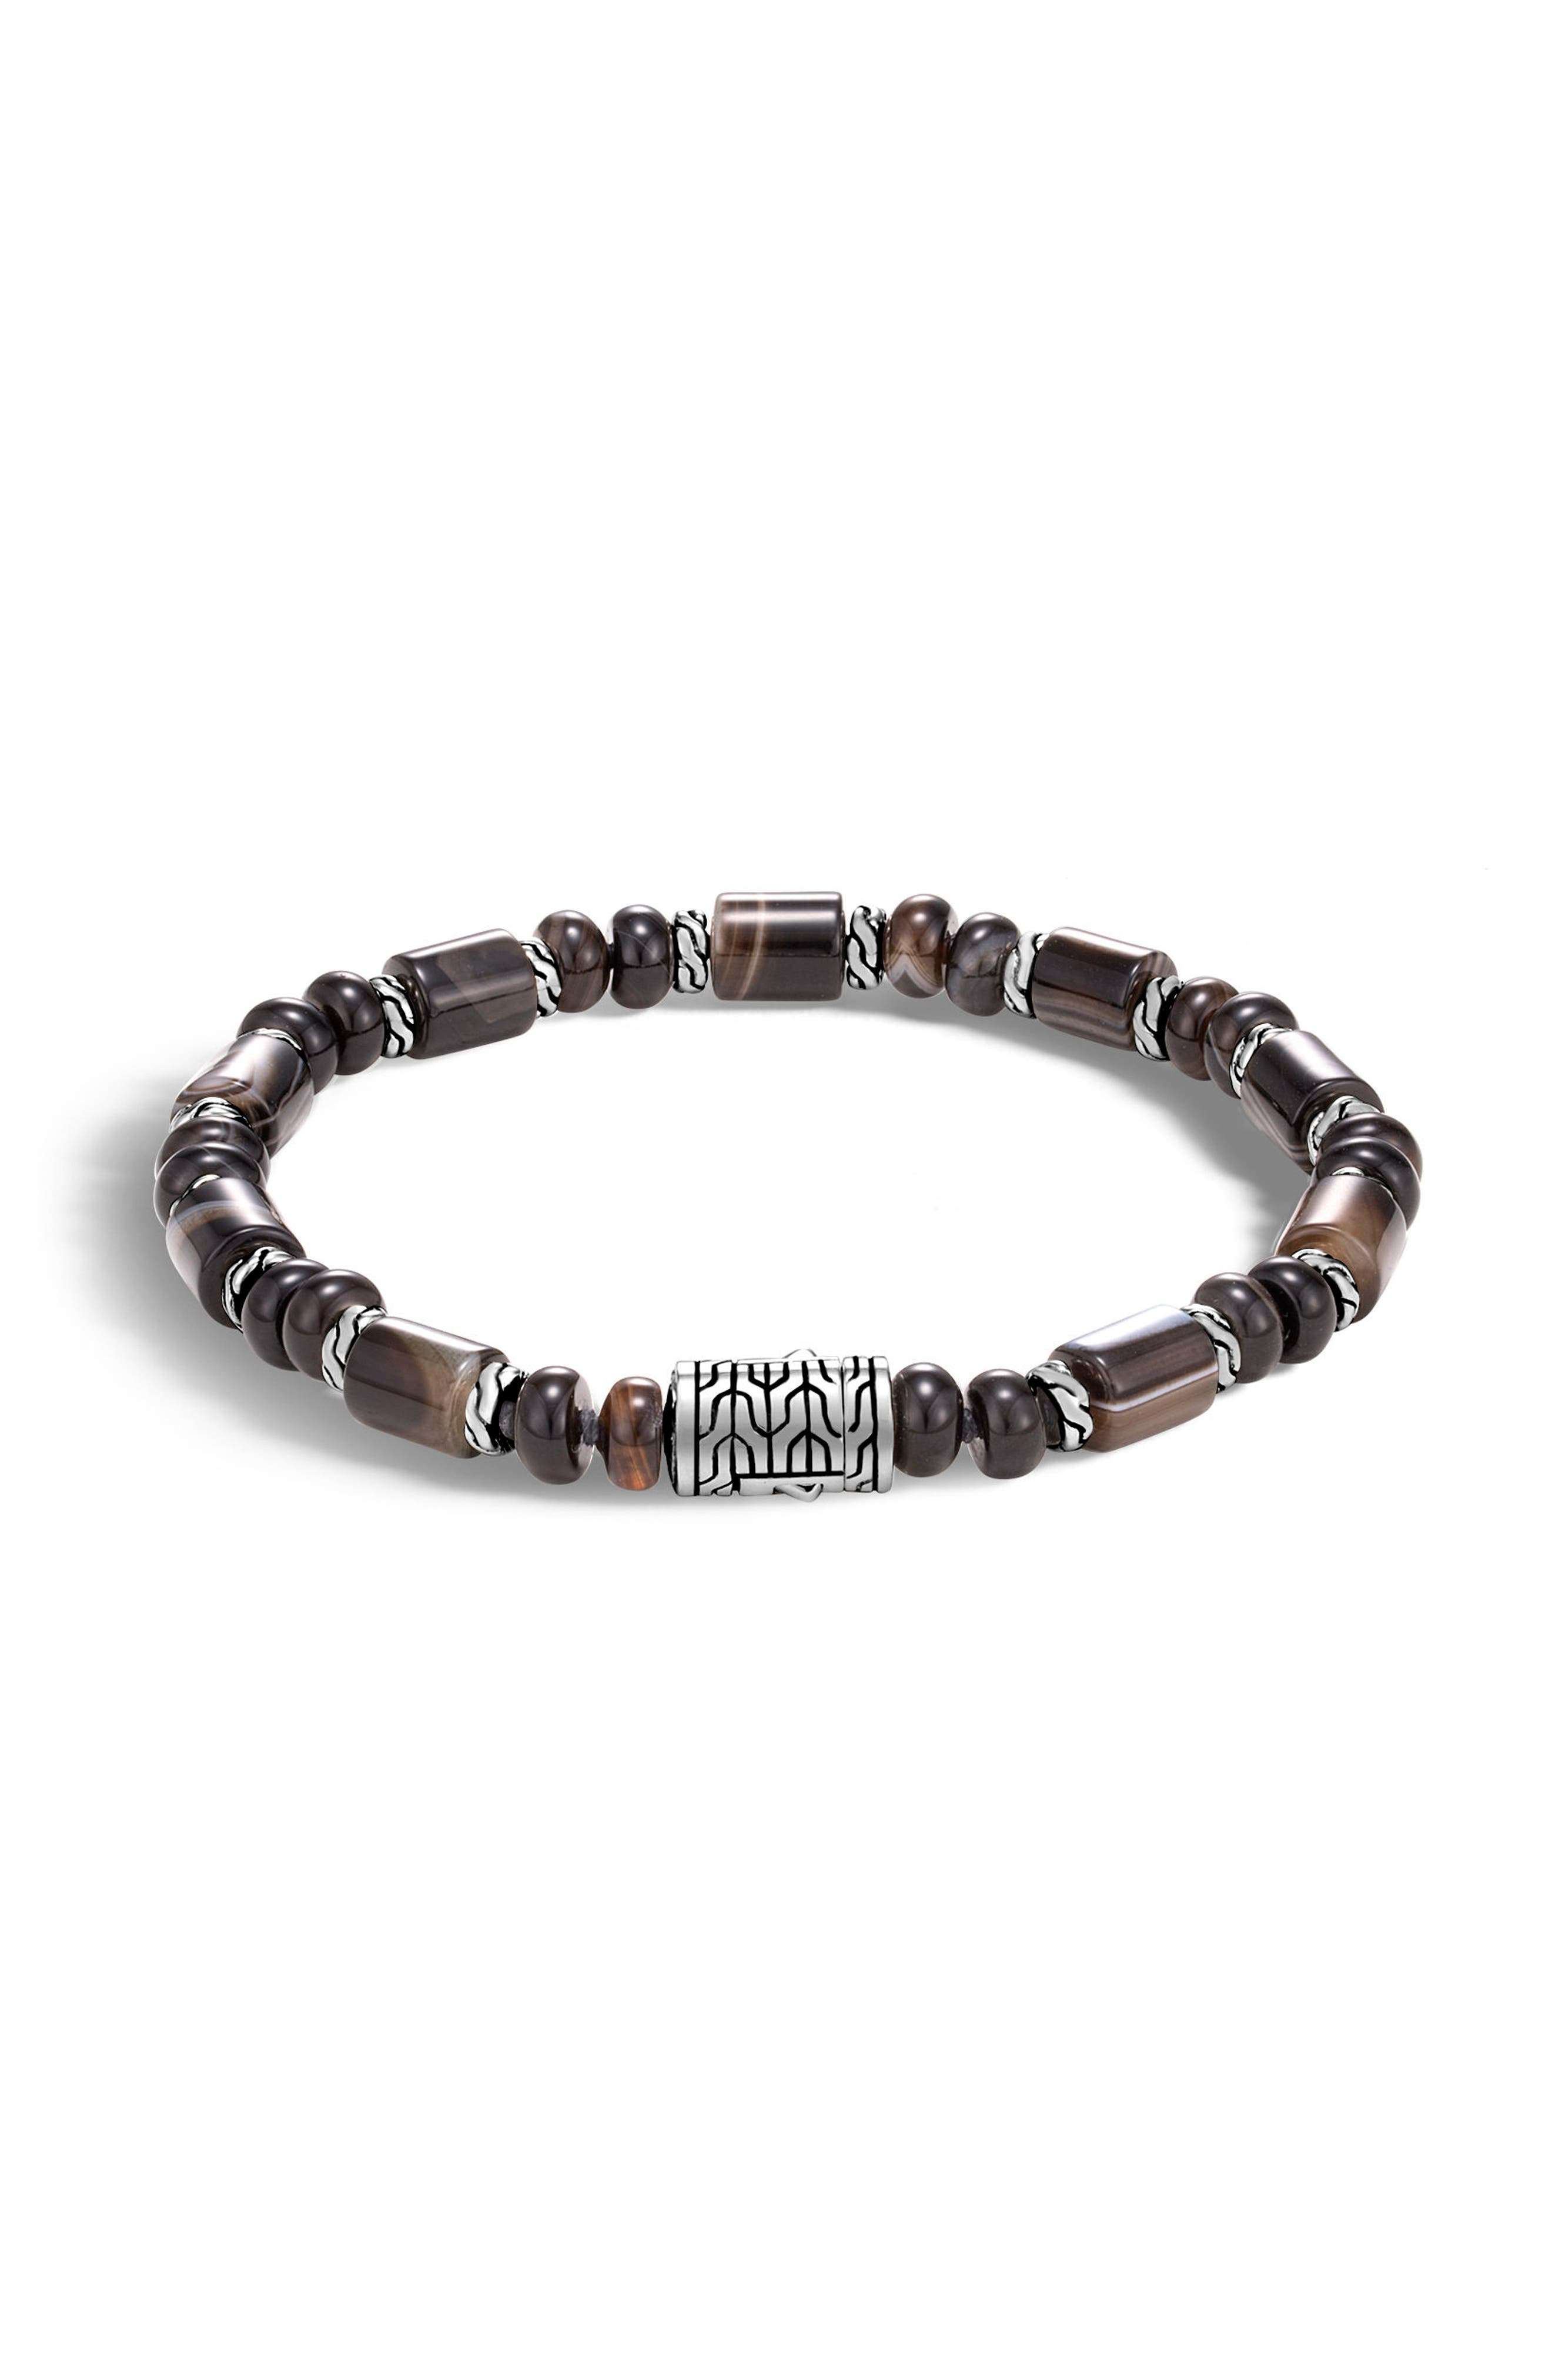 Classic Chain Bead Banded Agate Bracelet,                             Main thumbnail 1, color,                             Silver/ Banded Agate